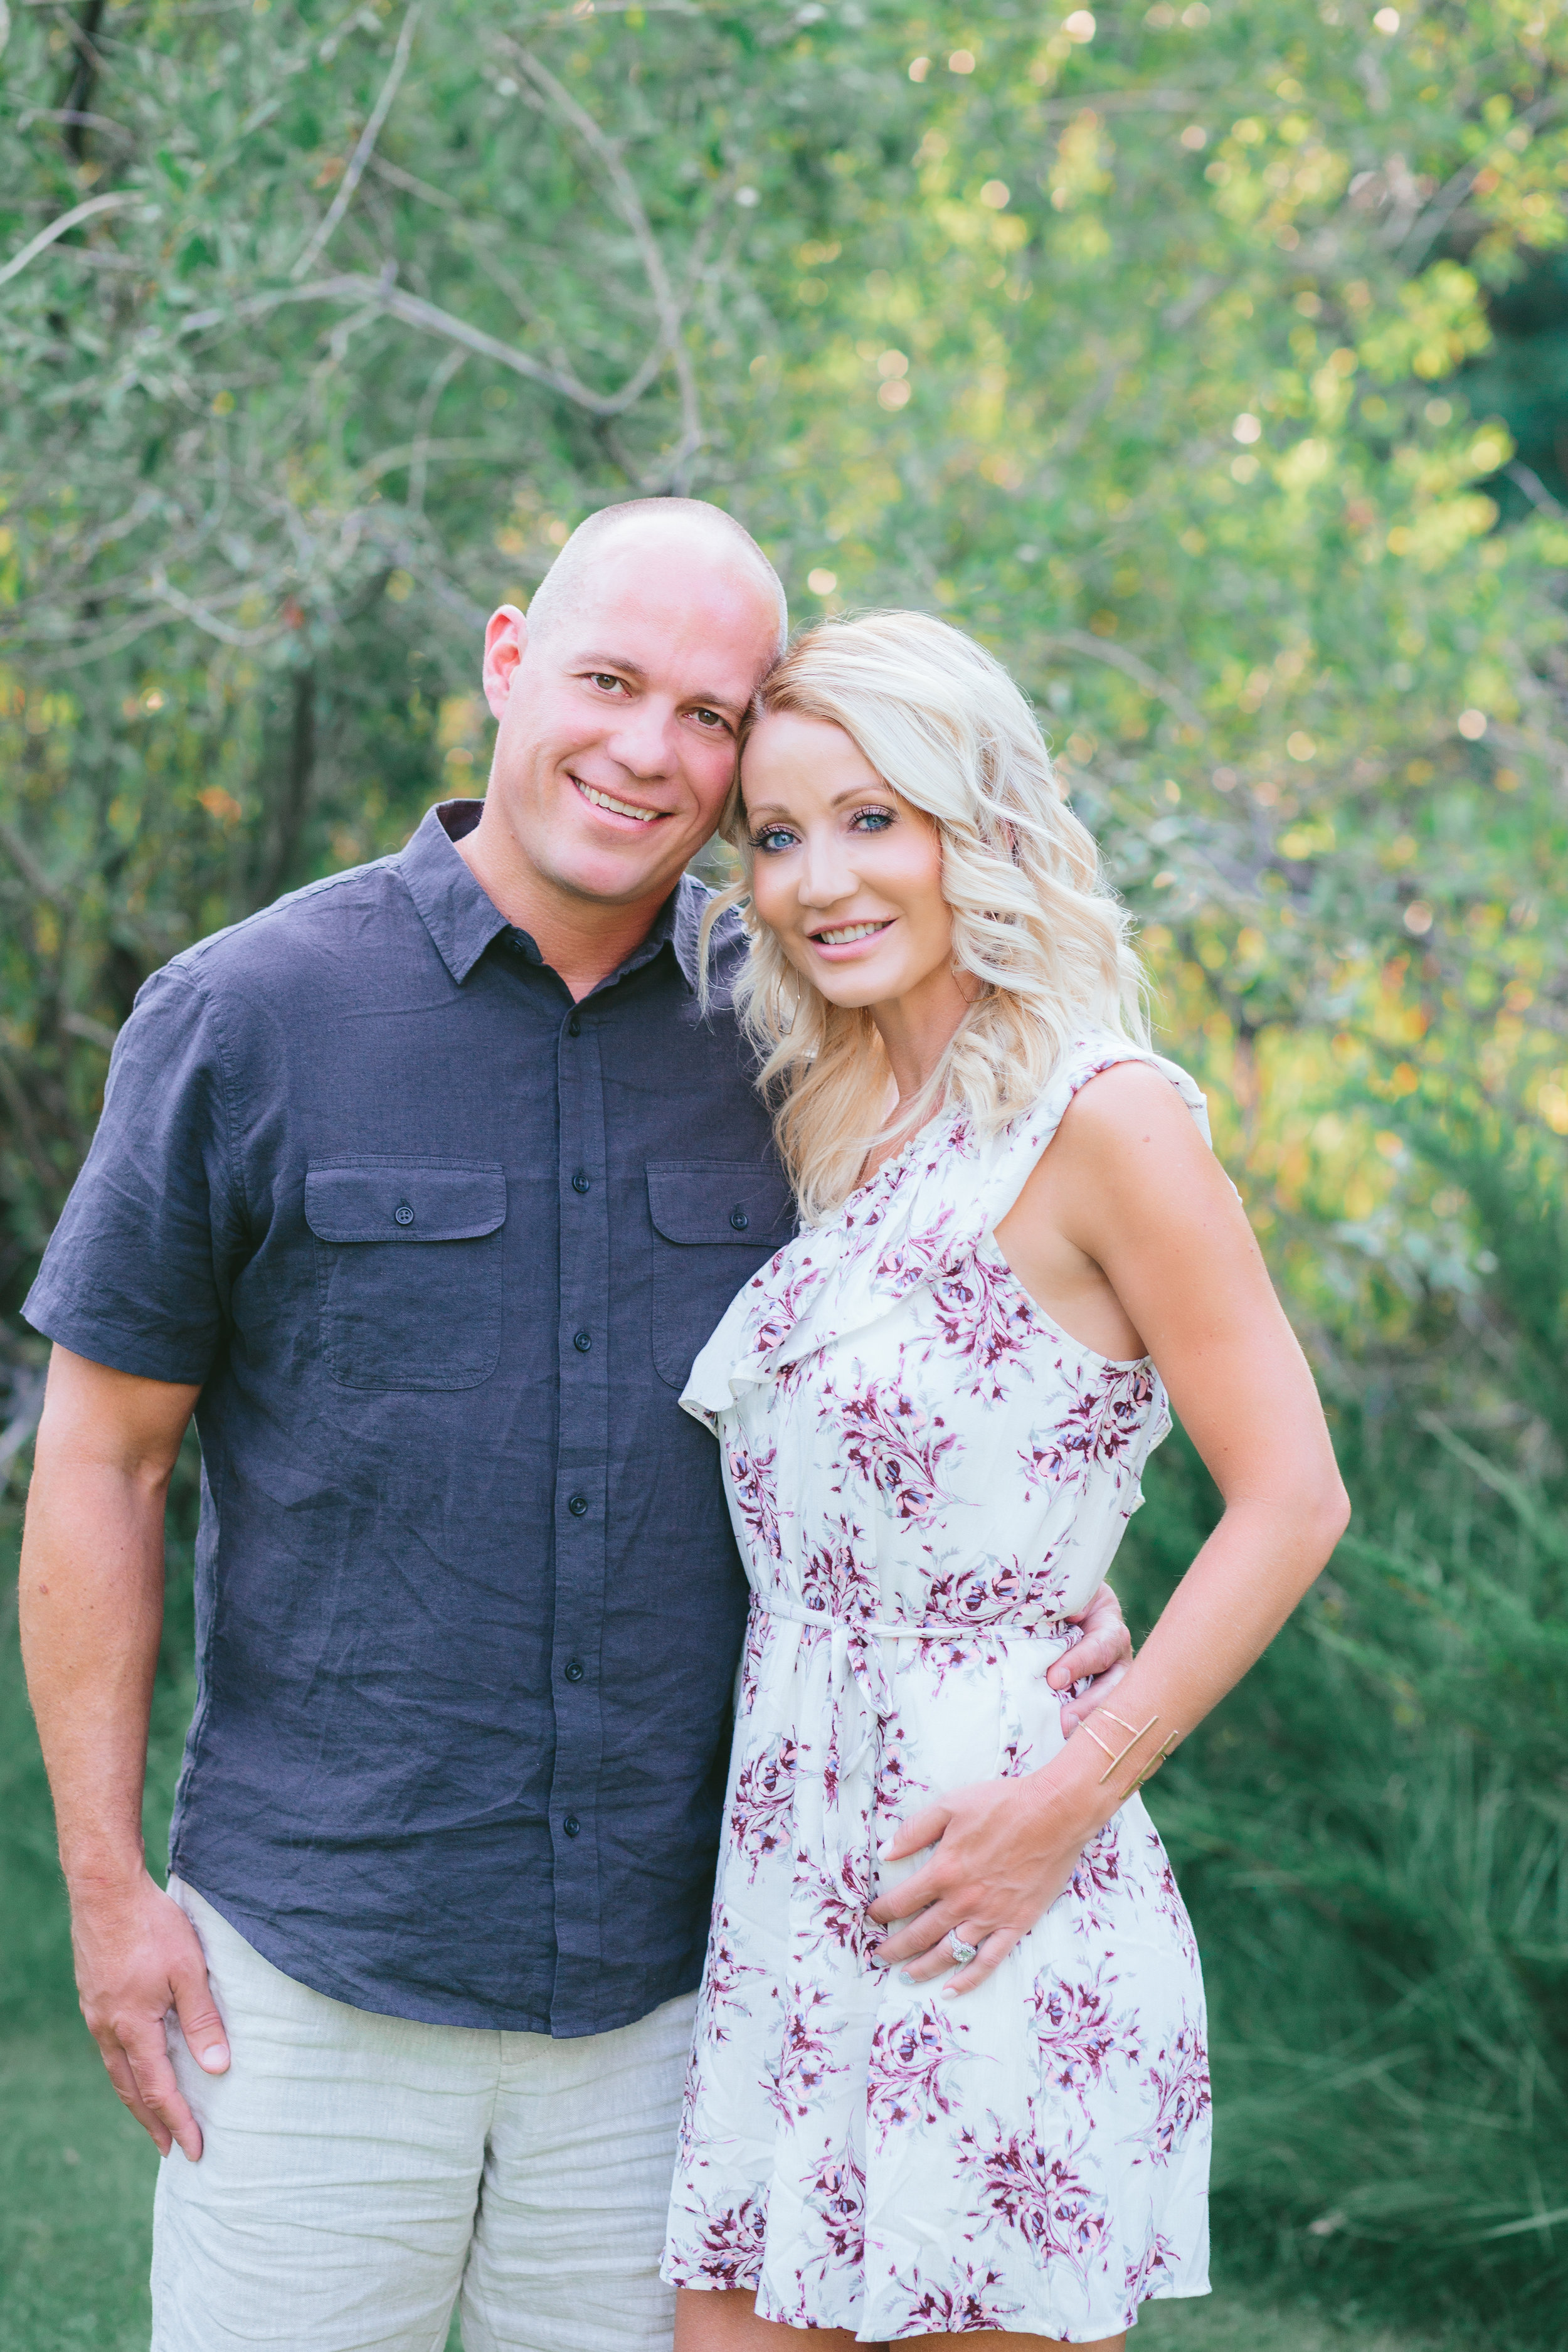 Owners, Greg and Brooke